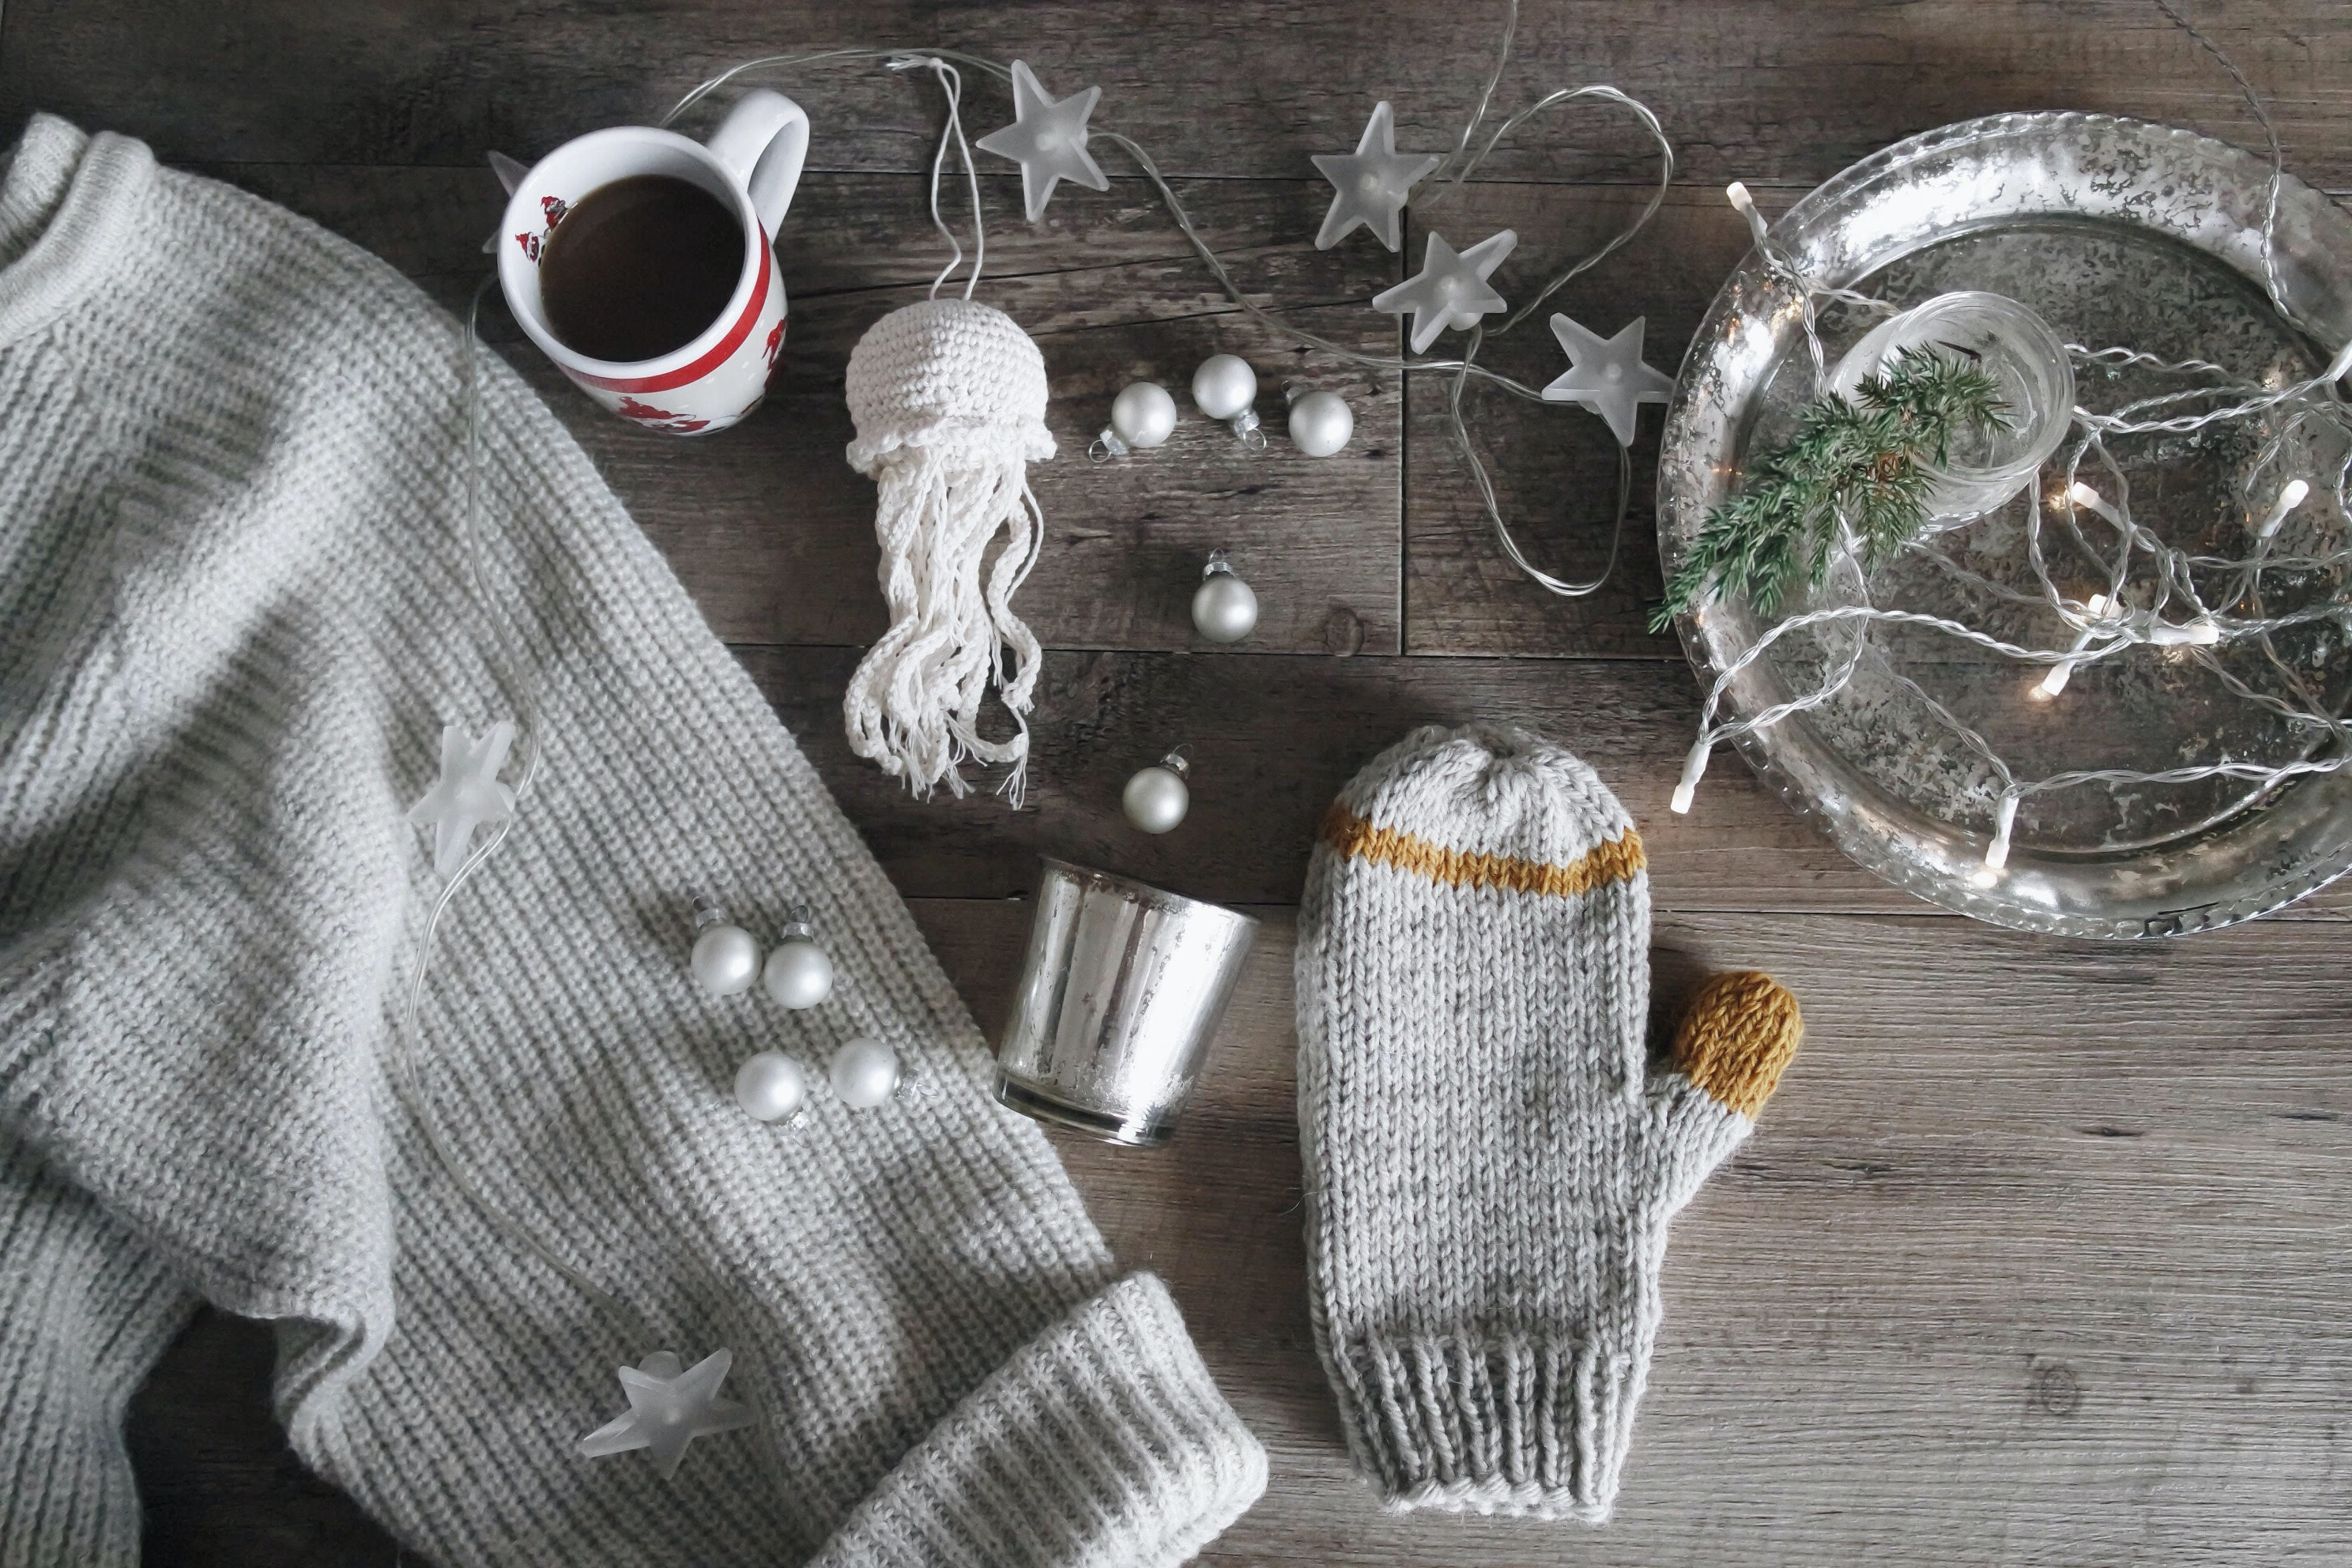 handmade, DIY, gift, ideas, christmas, holidays, travel, authentic local, unique, localbini, biniblog, experience, tour, blog, knitting, crafts, dyi, isolation, bored, winter, family, presents, seasonal, knit, crochet, gloves, white, grey, stars, jumpers